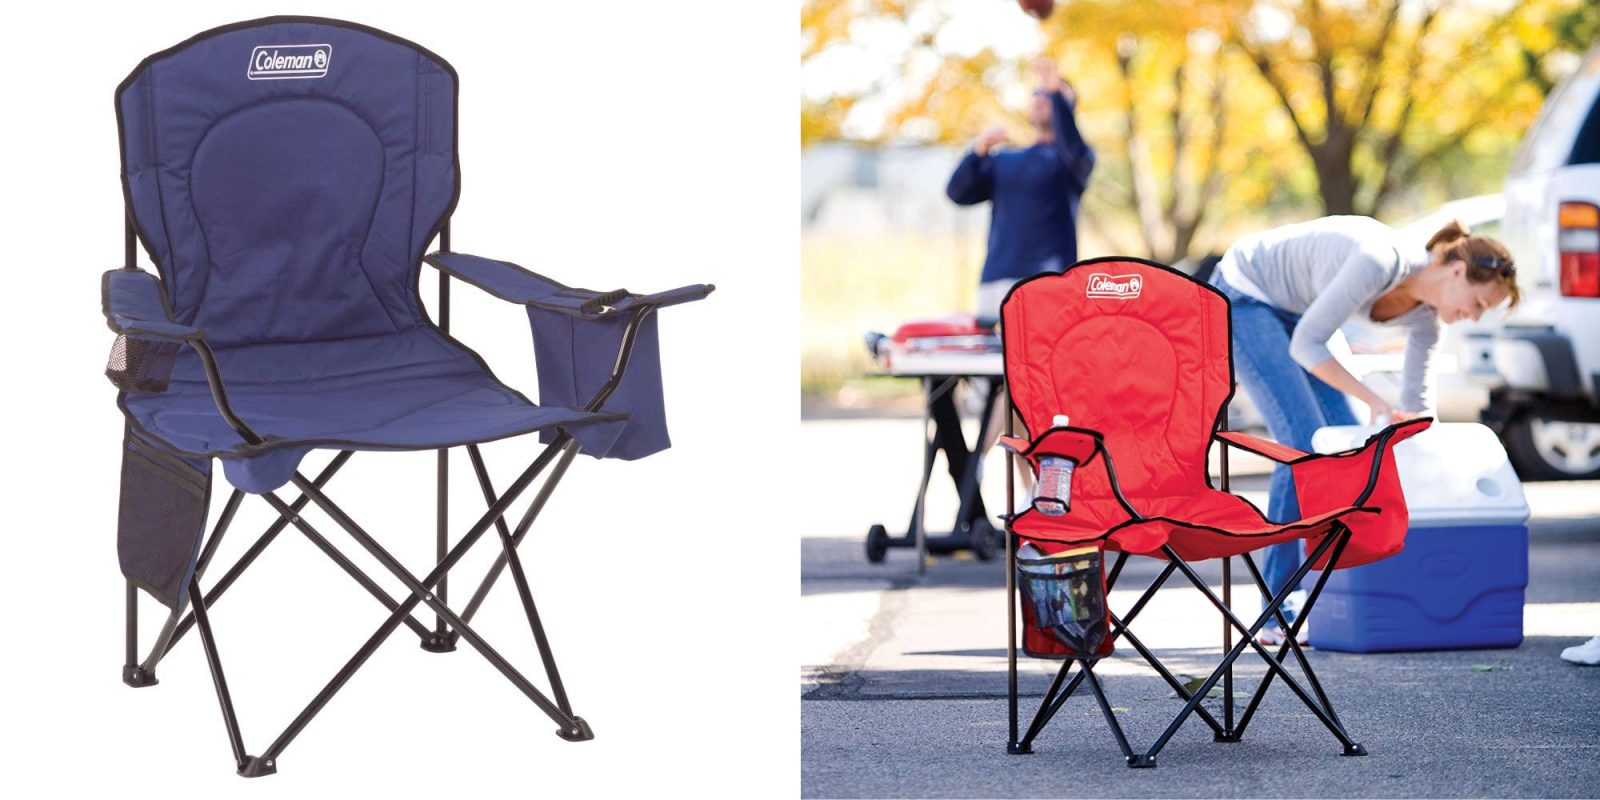 This Coleman Camping Chair has a built-in cooler for max convenience from $20